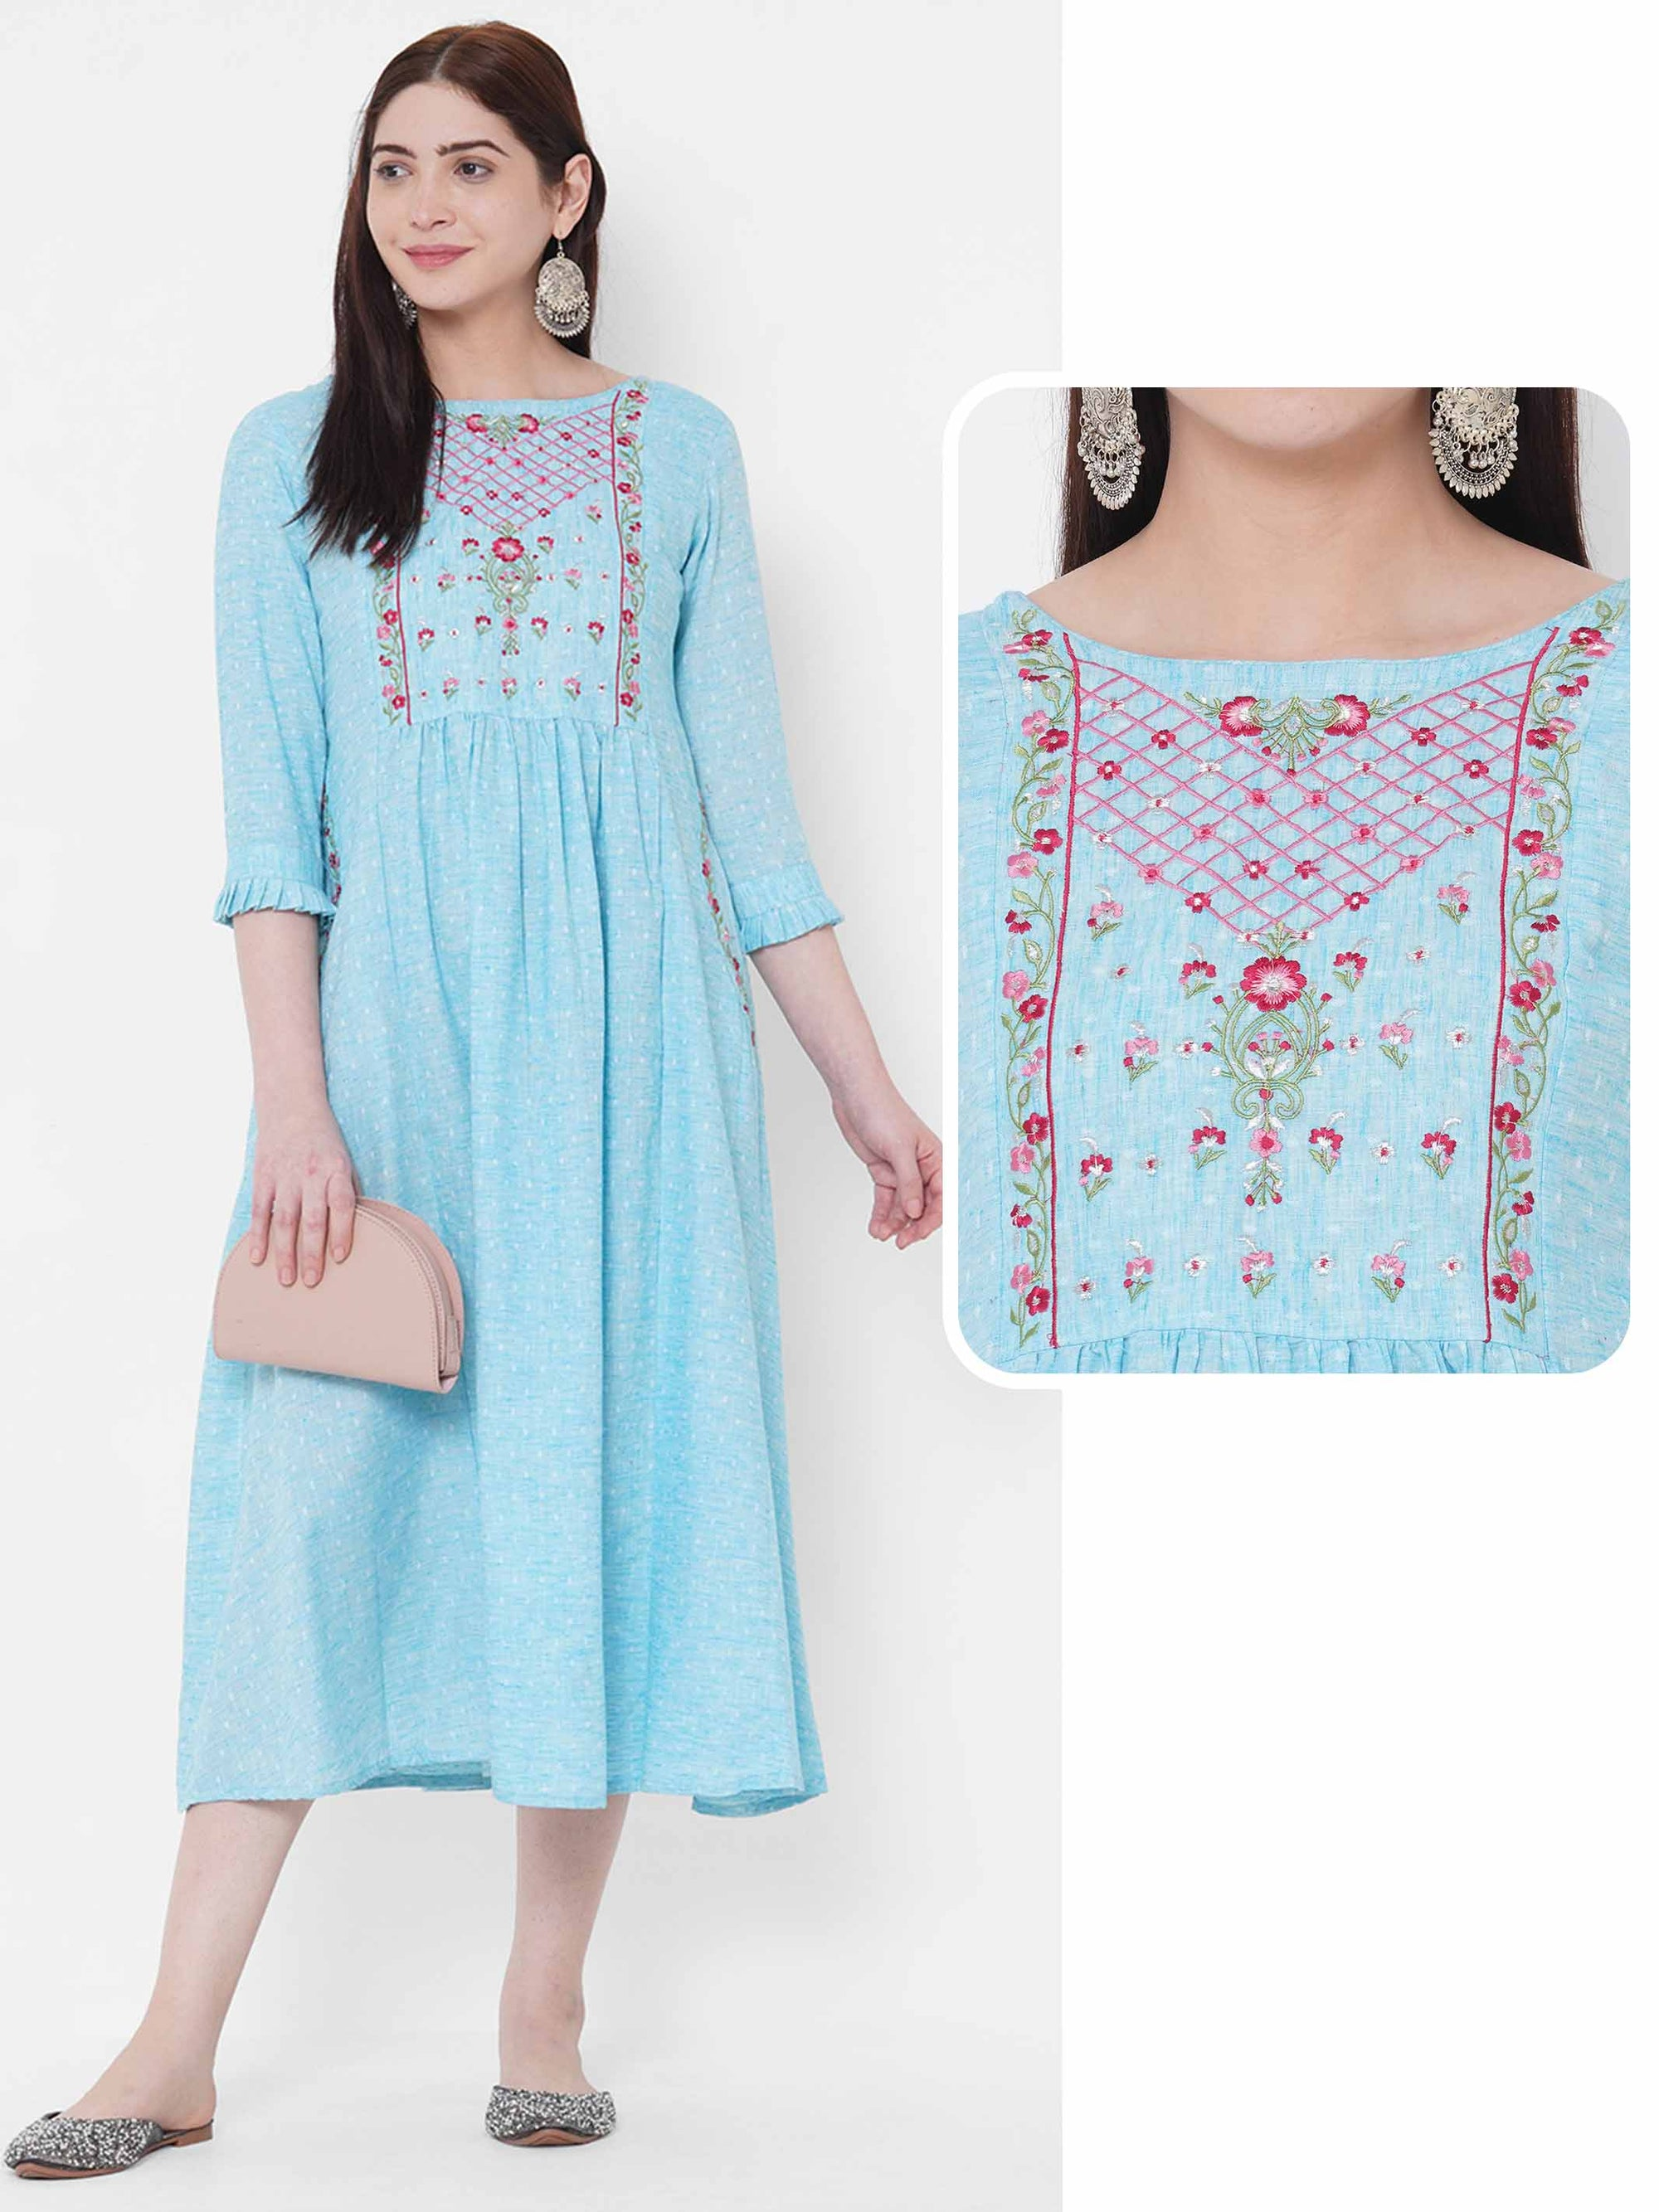 Floral Embroidered & Gathered Dress - Powder Blue